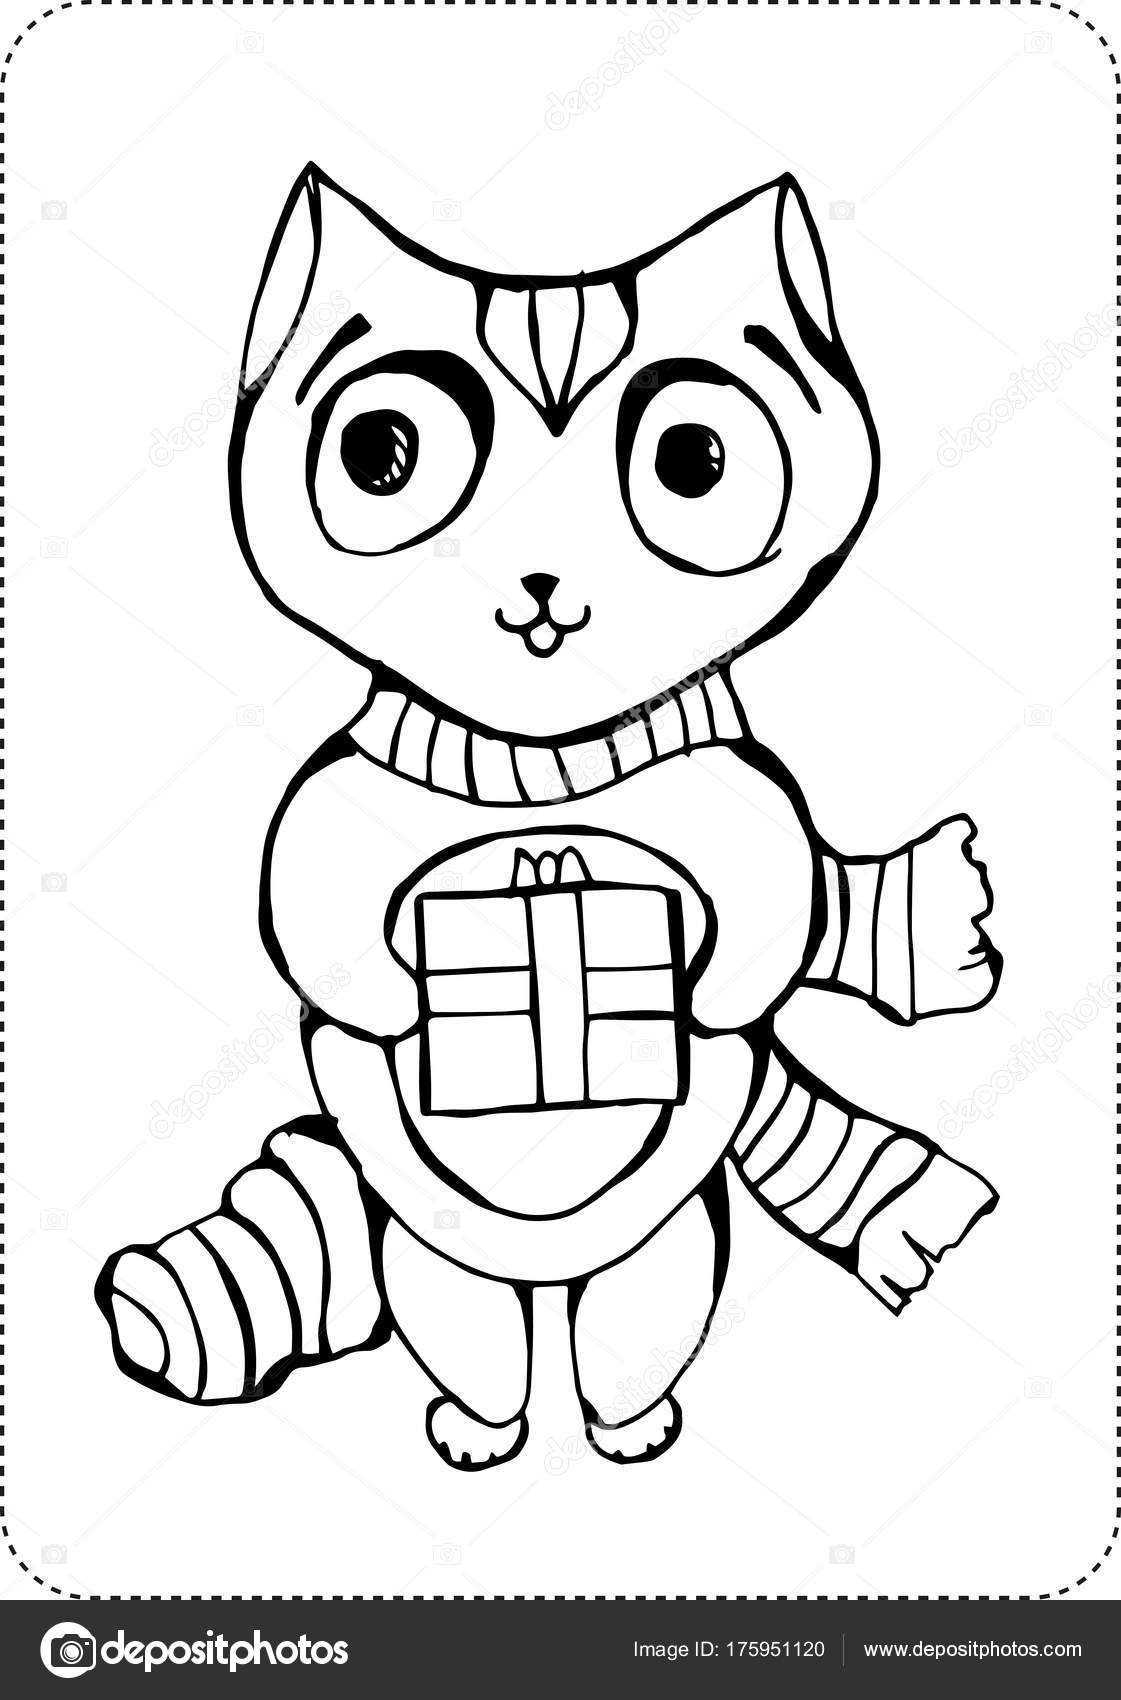 Coloriage Chat Noel.Page De Coloriage Chat Noel Image Vectorielle Klllane C 175951120